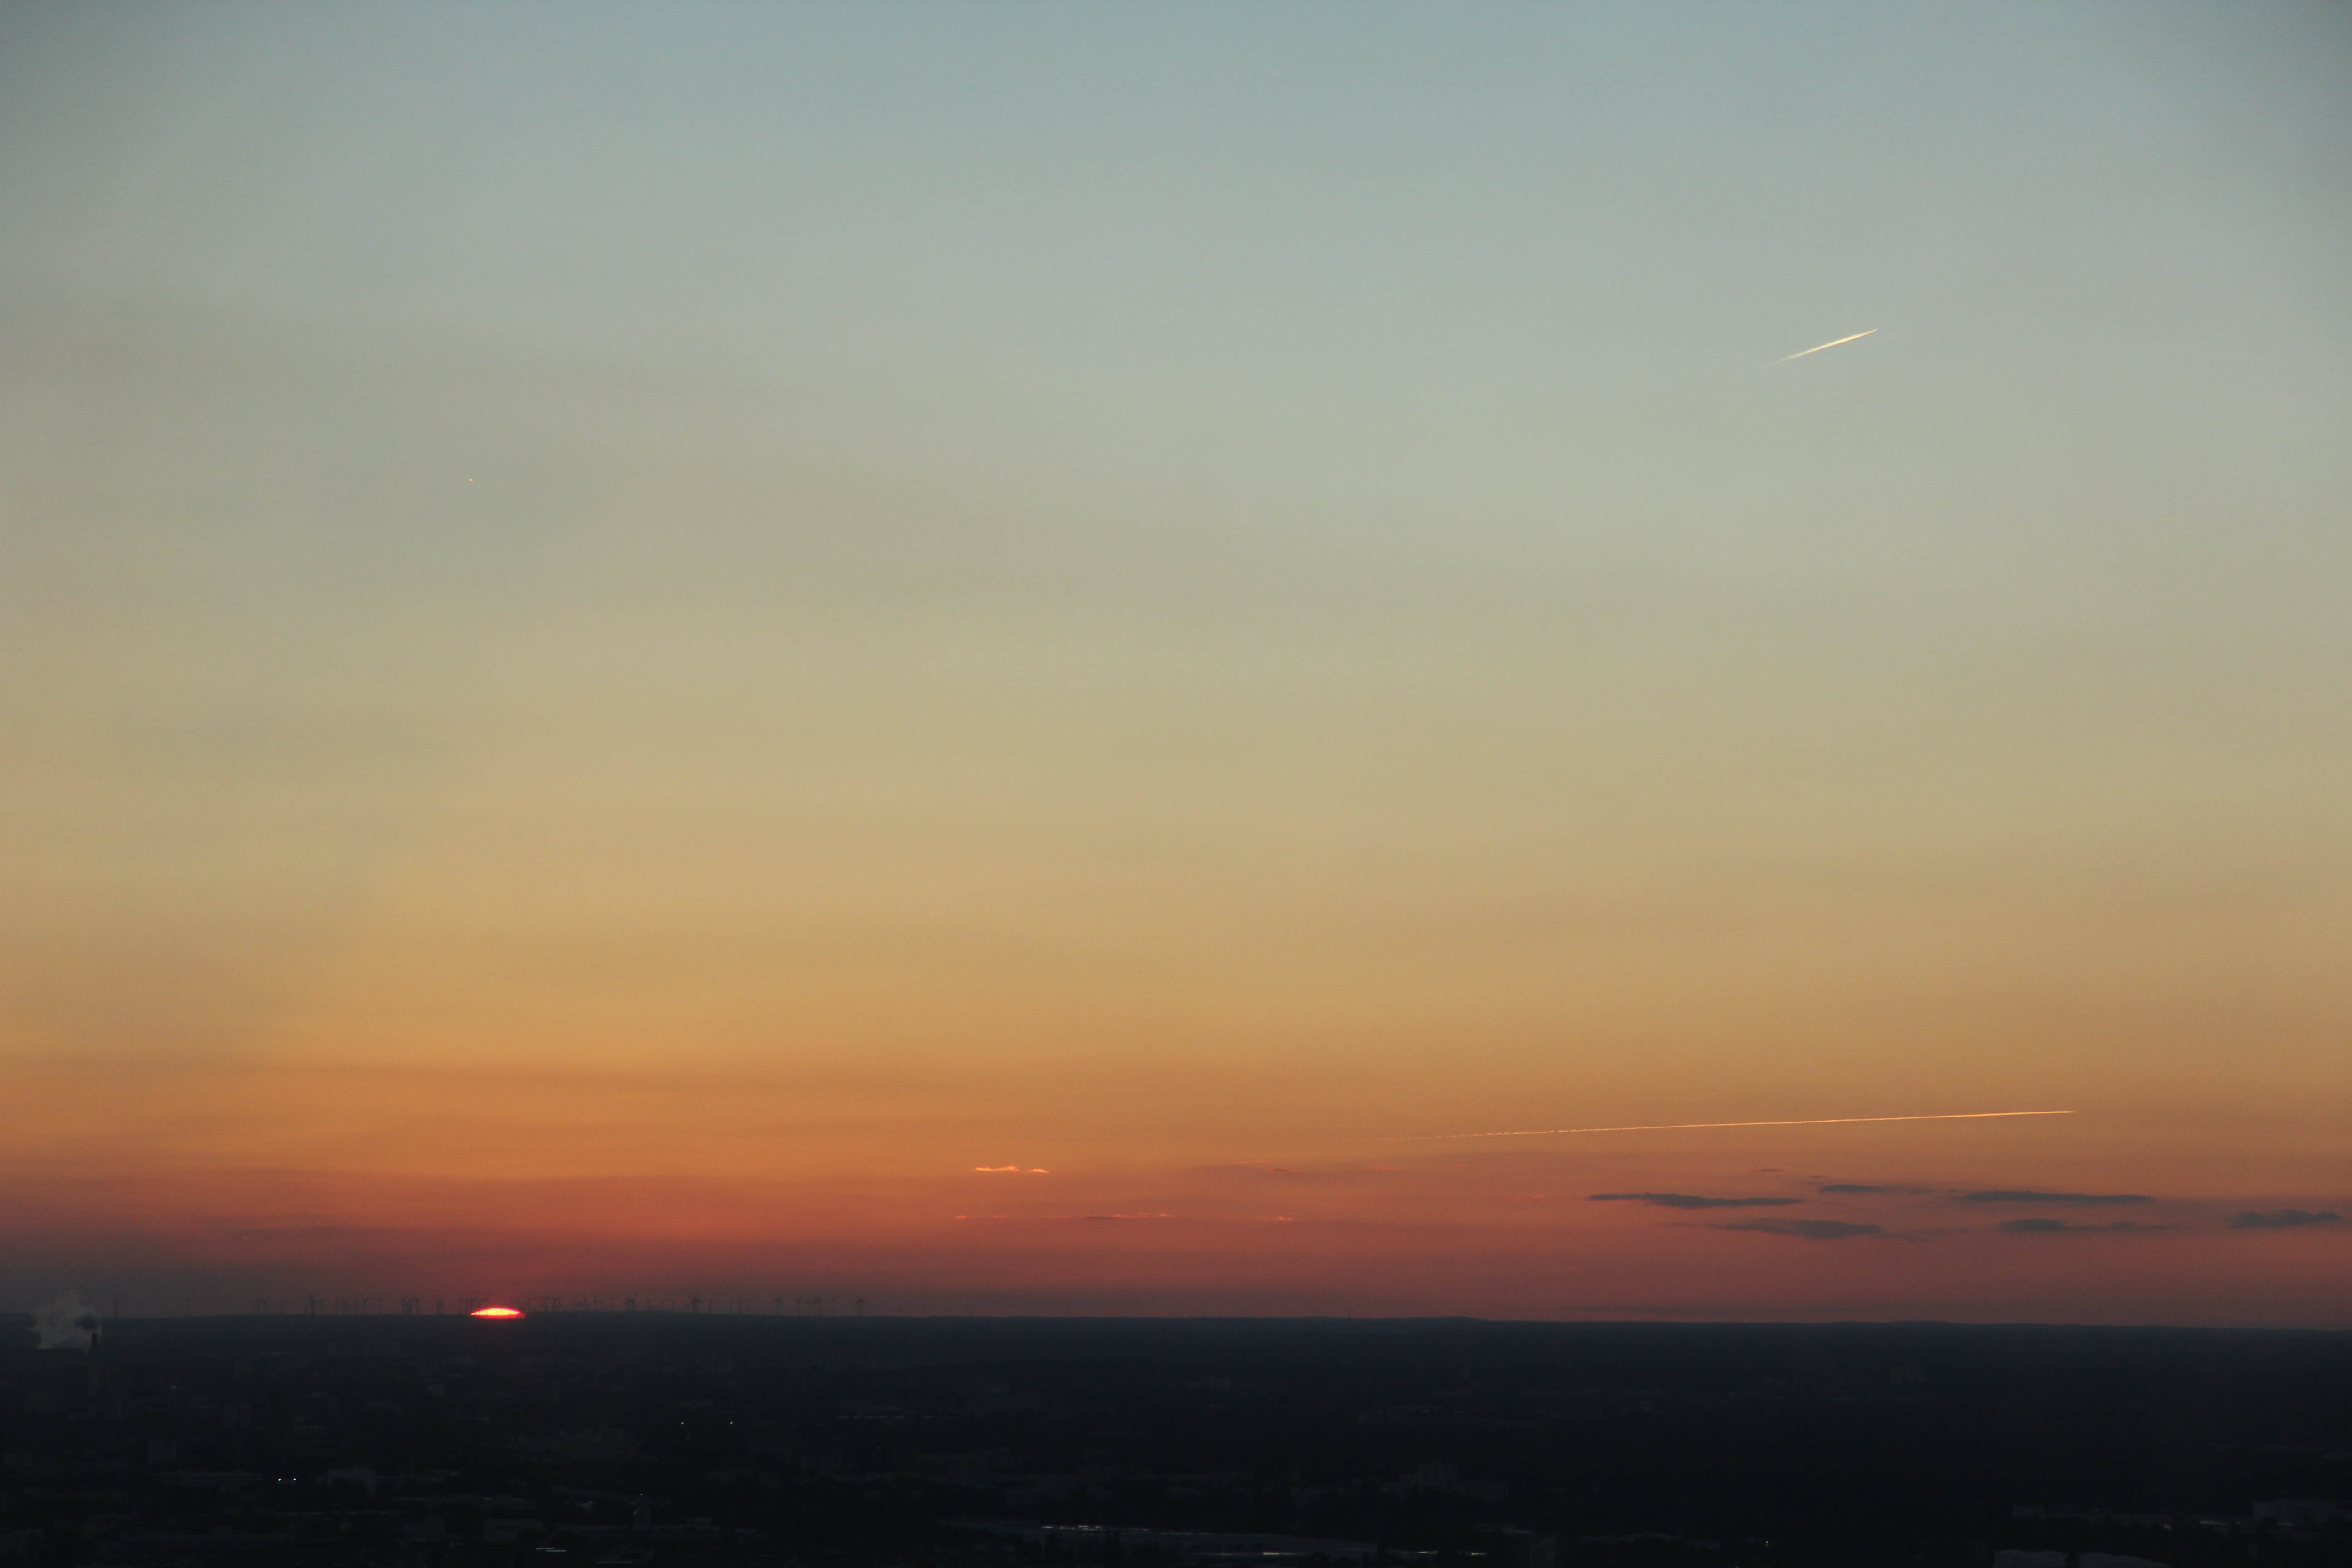 The Sunset over Berlin from the Fernehturm (TV Tower) at Alexanderplatz